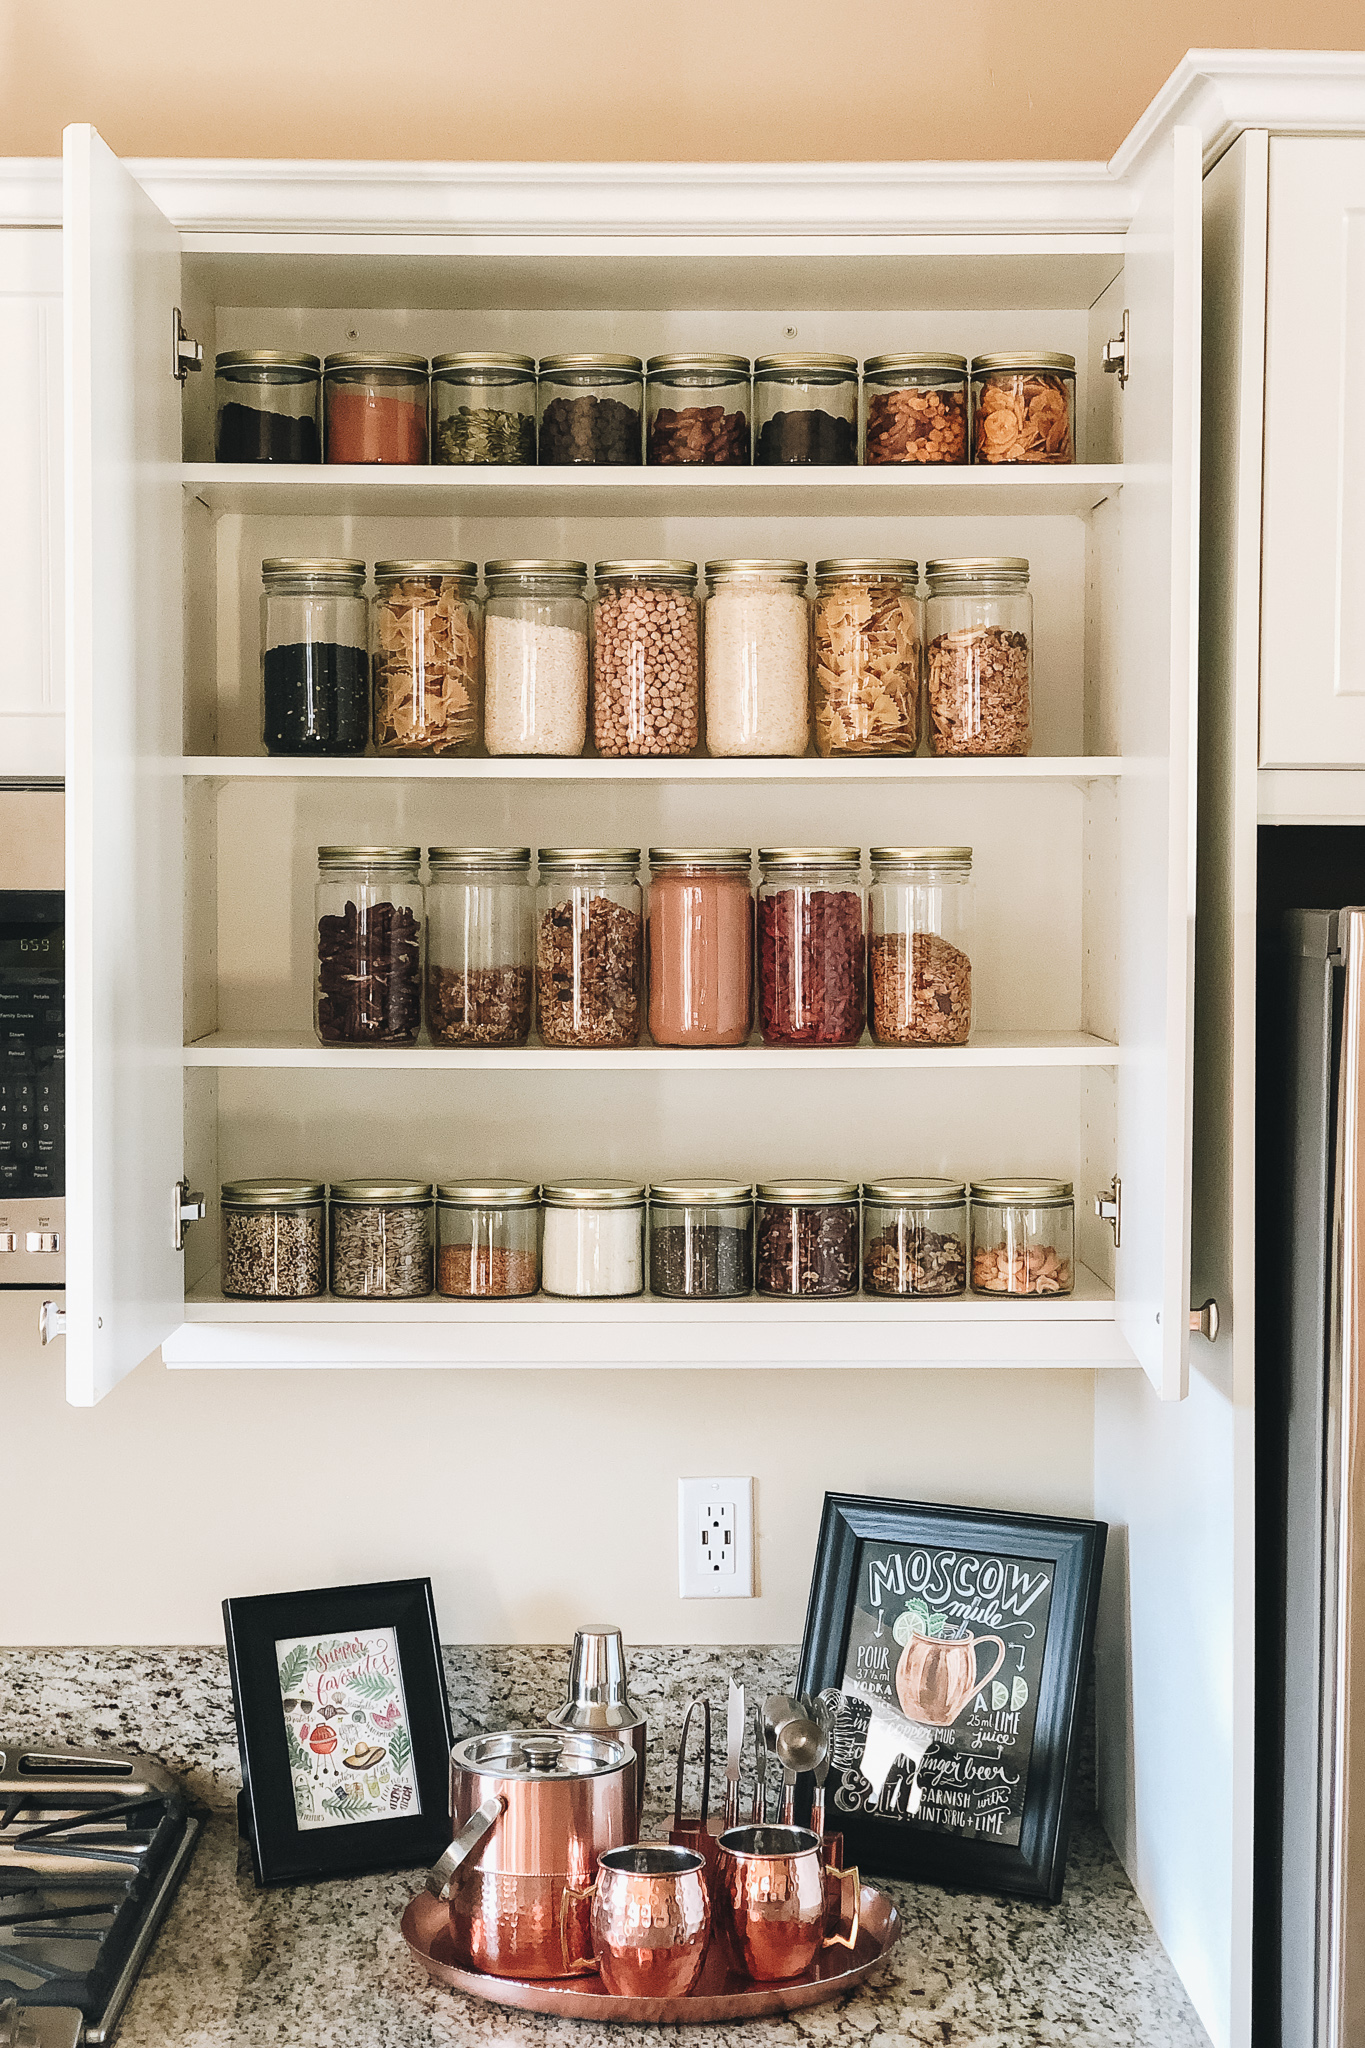 Bulk food pantry glass jars | Cedar + Surf